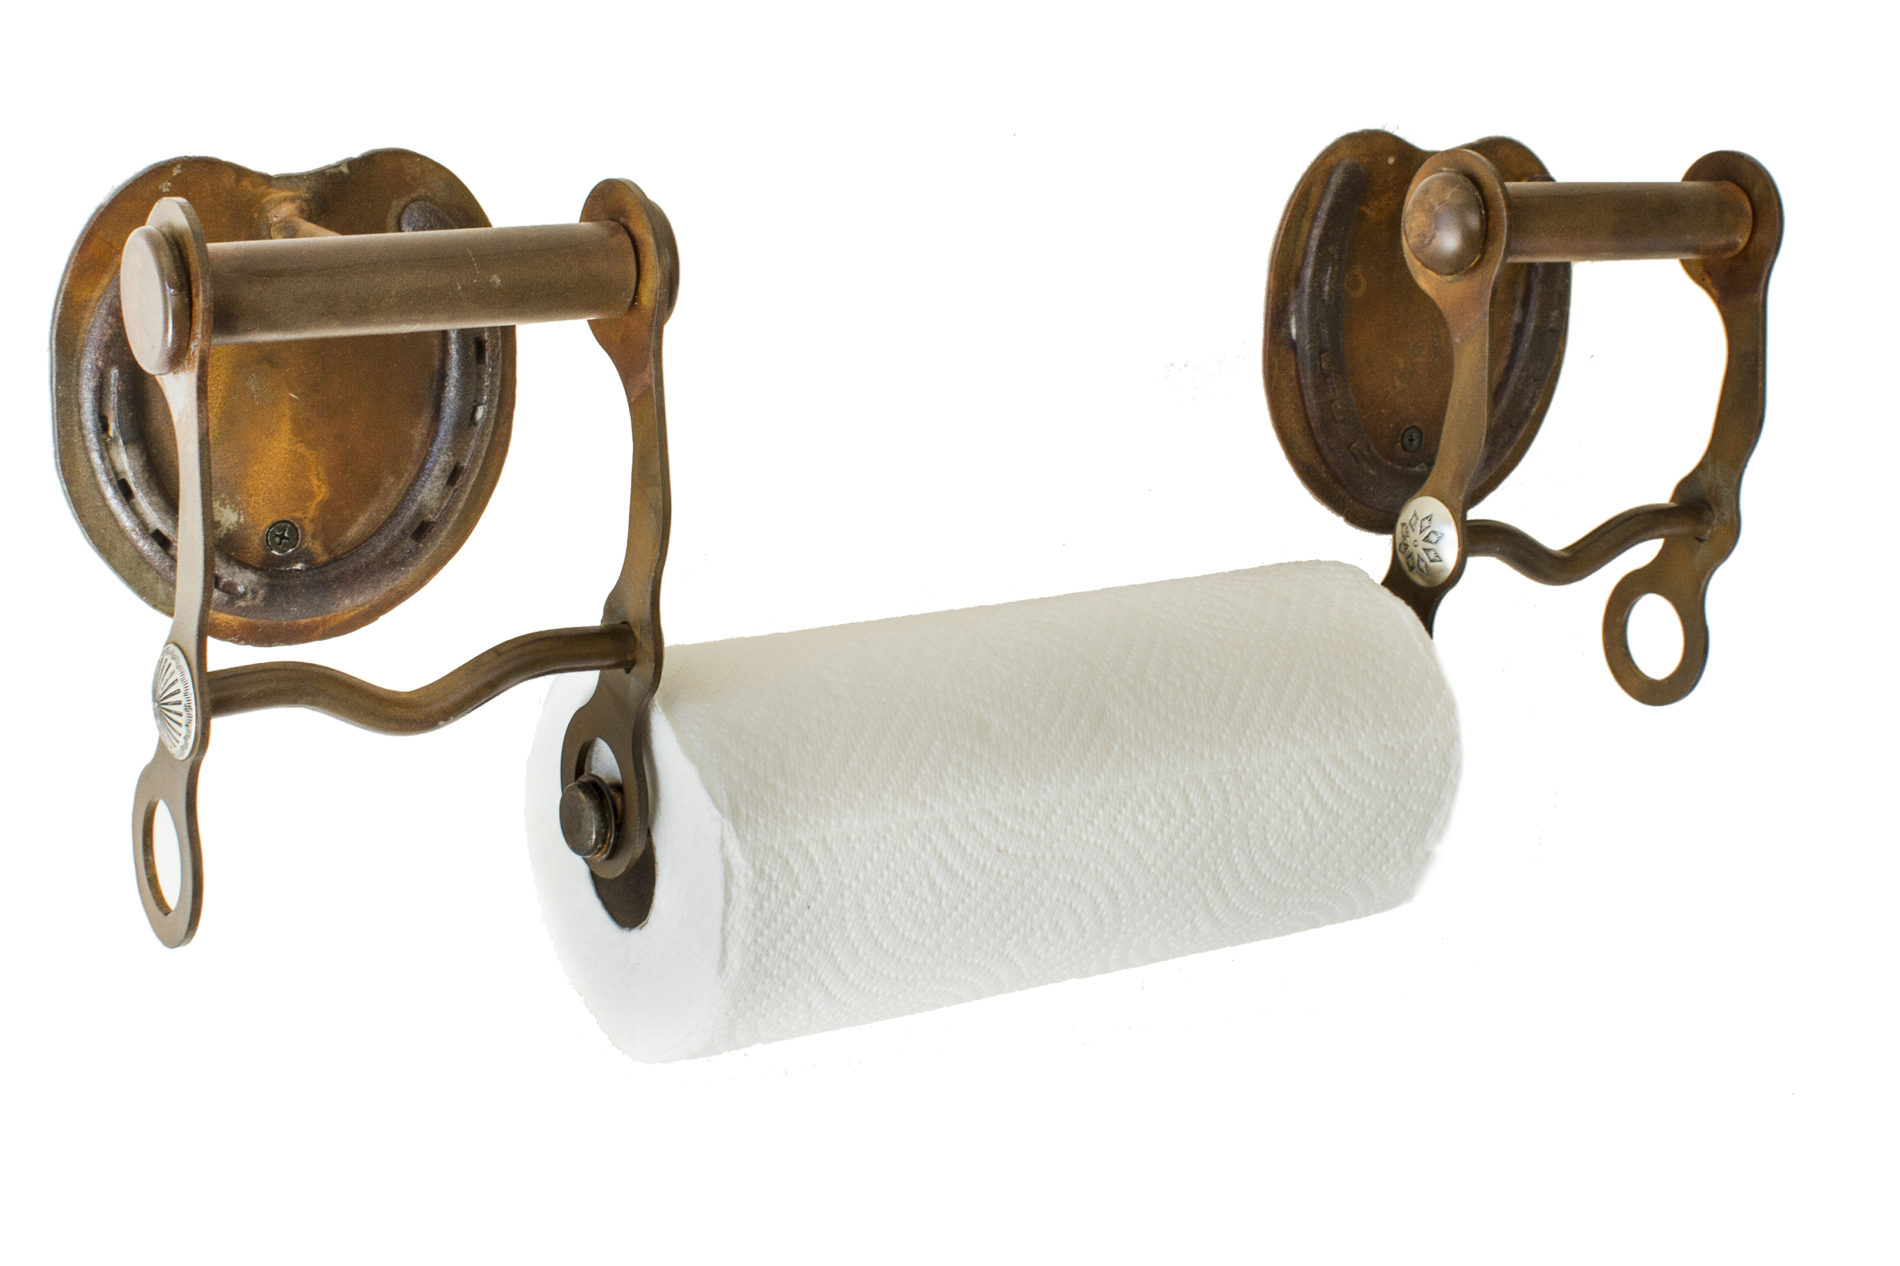 Mountain And Western Themed Rustic Paper Towel Holder Functional Home Decor